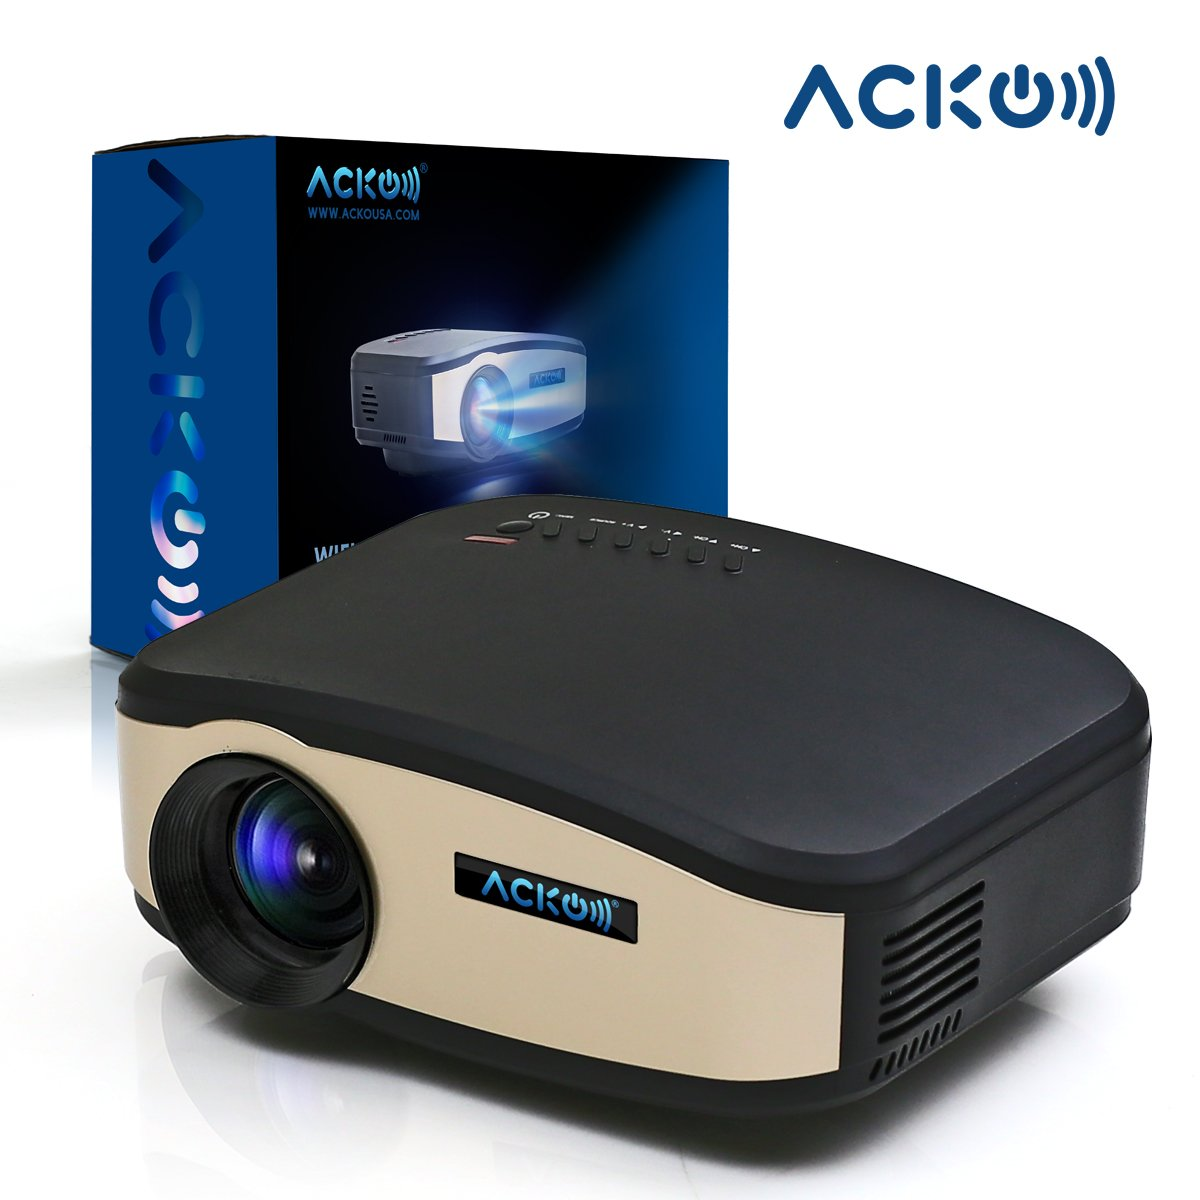 Acko Wifi LED HD Wireless Portable Mini LED Video Multimedia Digital Movie Projector 1200 Lumens Home Theater 1080p USB HDMI VGA Player DVD Television Gaming Computer PC Laptop Black by Acko